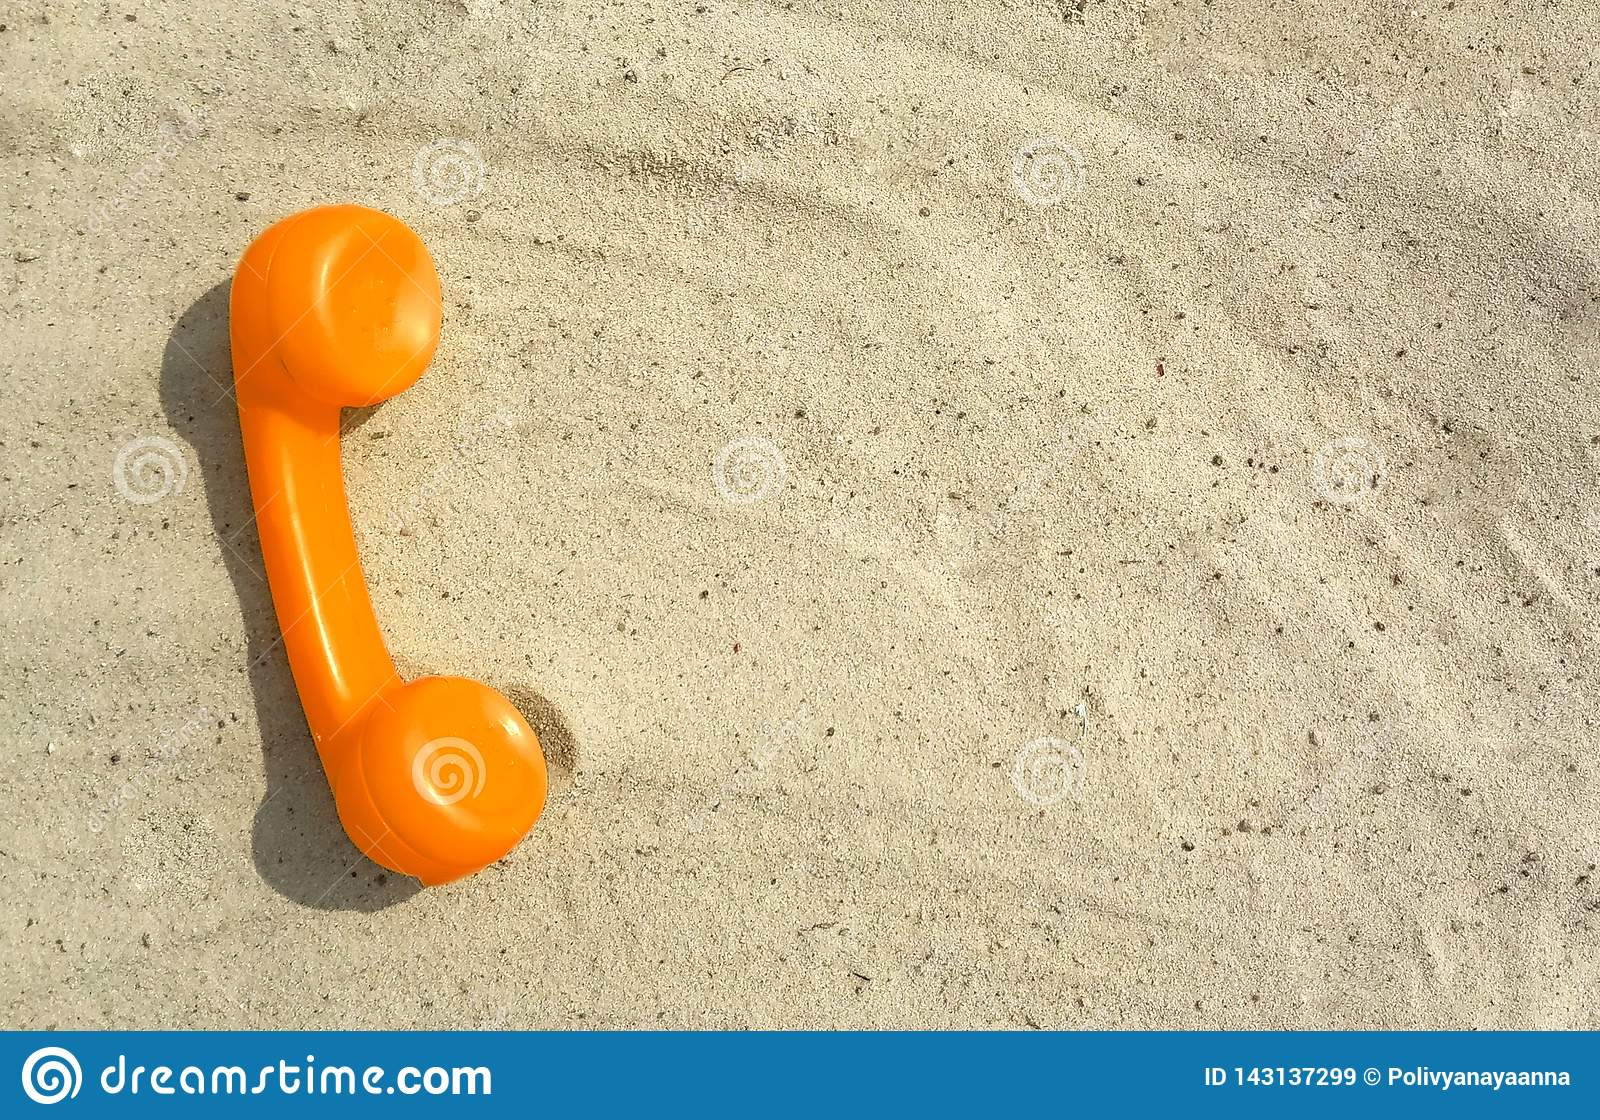 Orange tube of an old vintage phone is lying on the sand